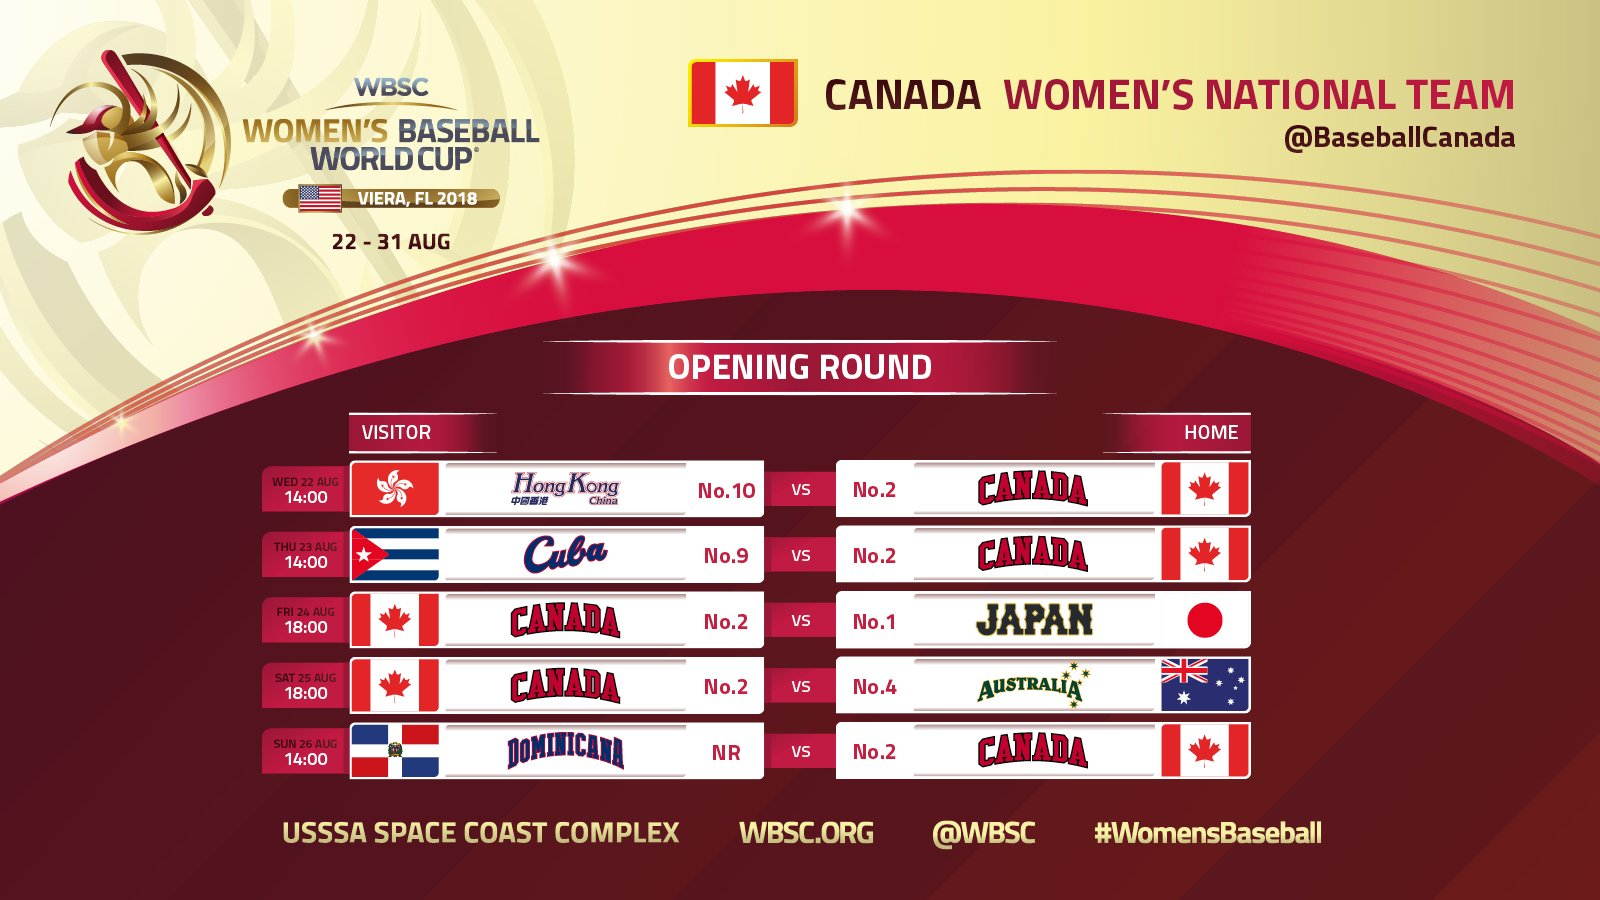 Schedule revealed for WBSC Women's Baseball World Cup